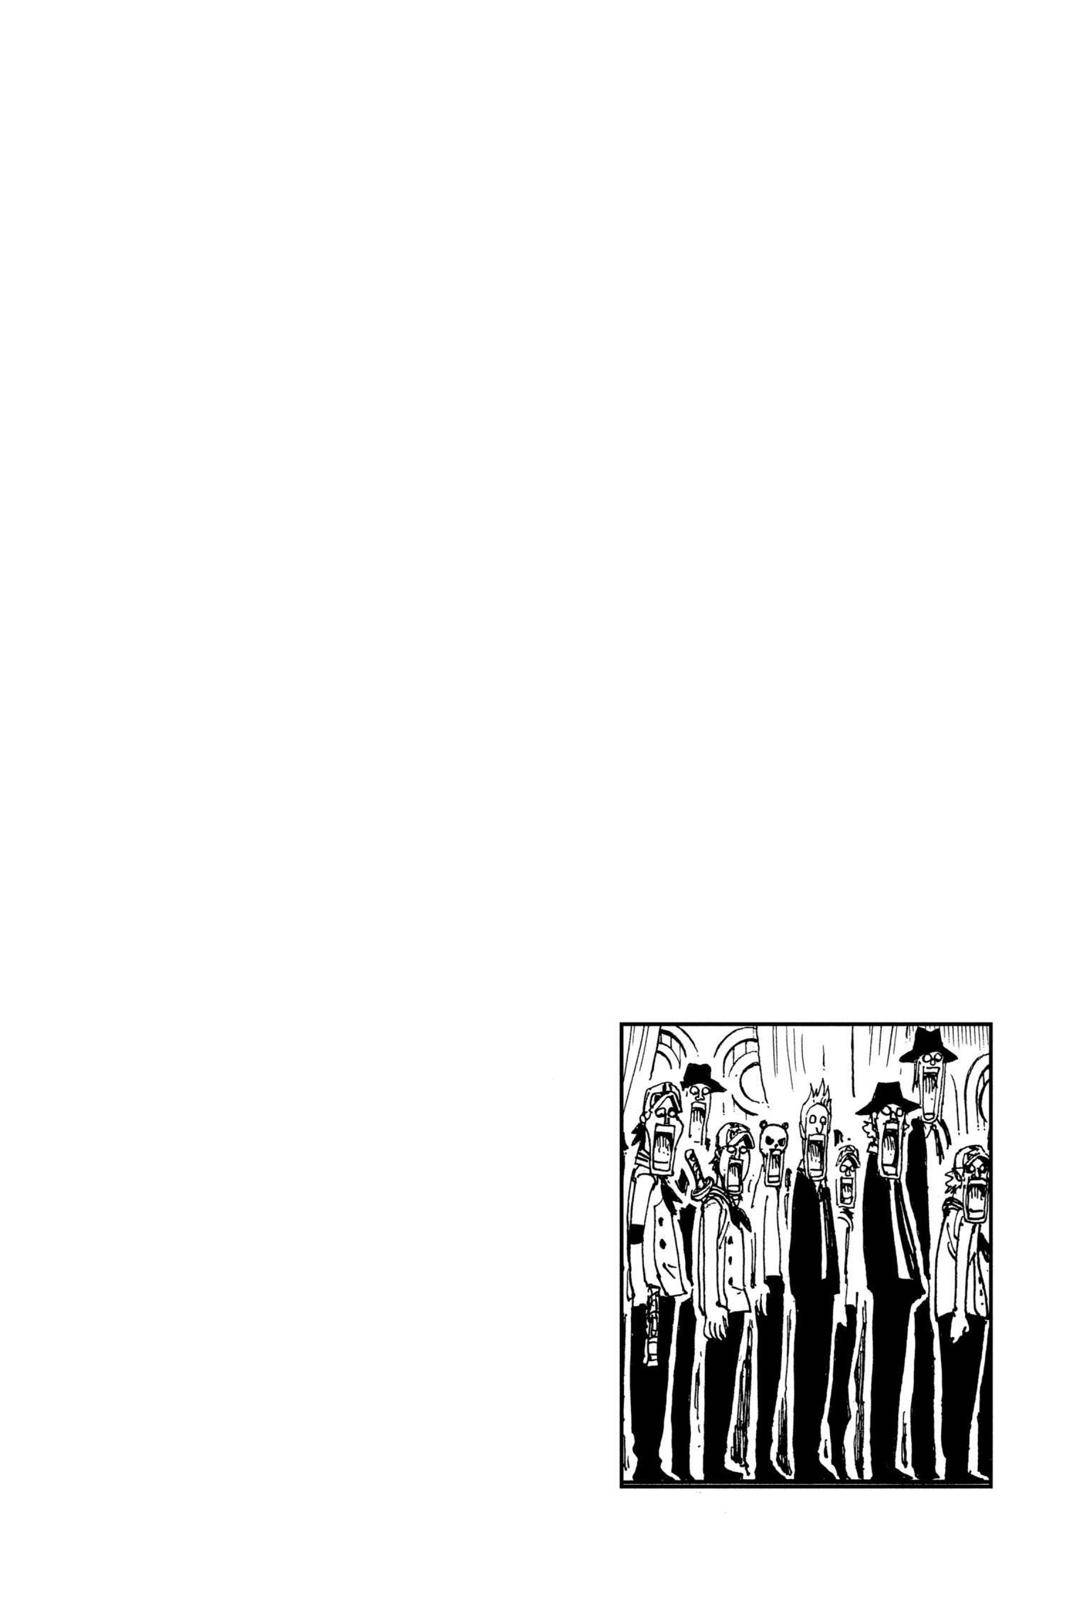 One Piece Chapter 369 Page 2